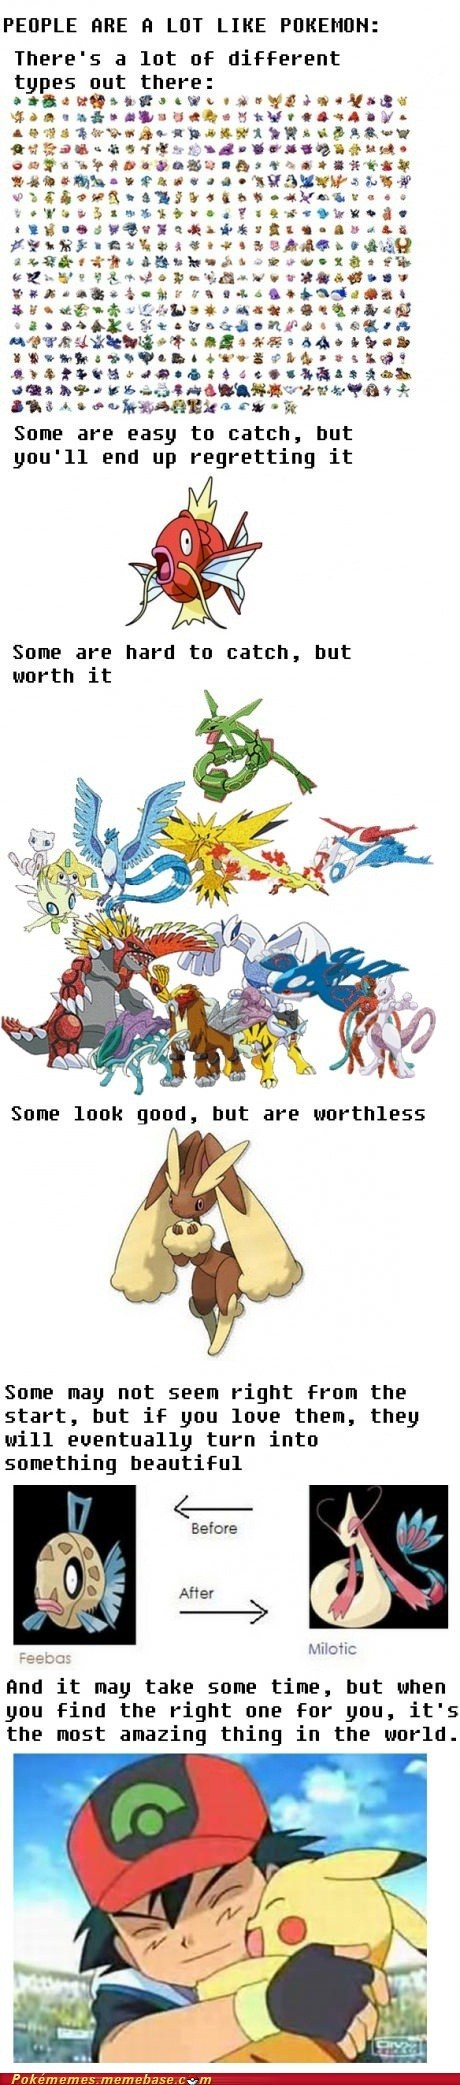 People Are a Lot Like Pokémon